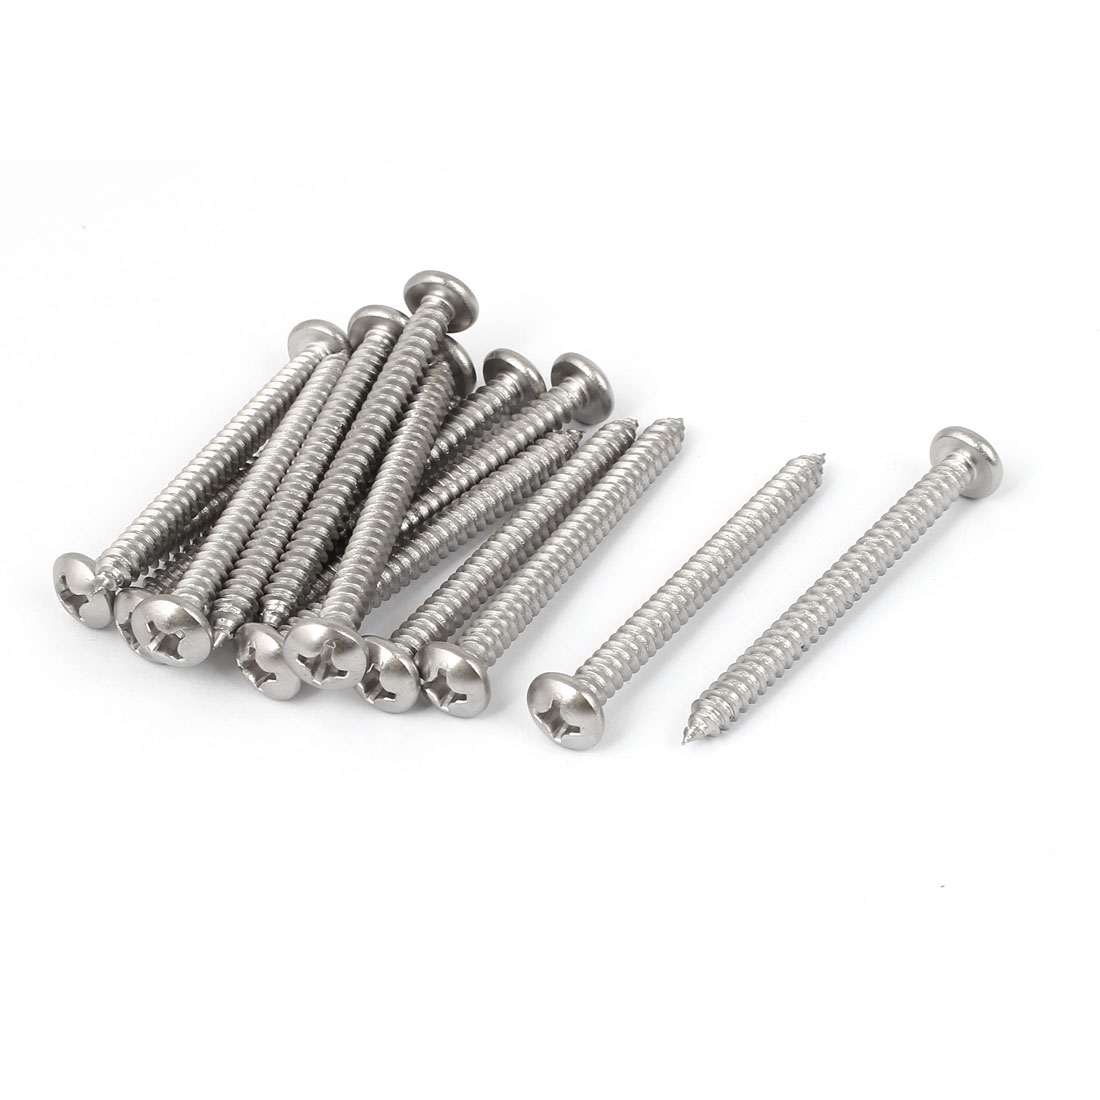 #12 M5.5x60mm Stainless Steel Phillips Round Pan Head Self Tapping Screws 15pcs